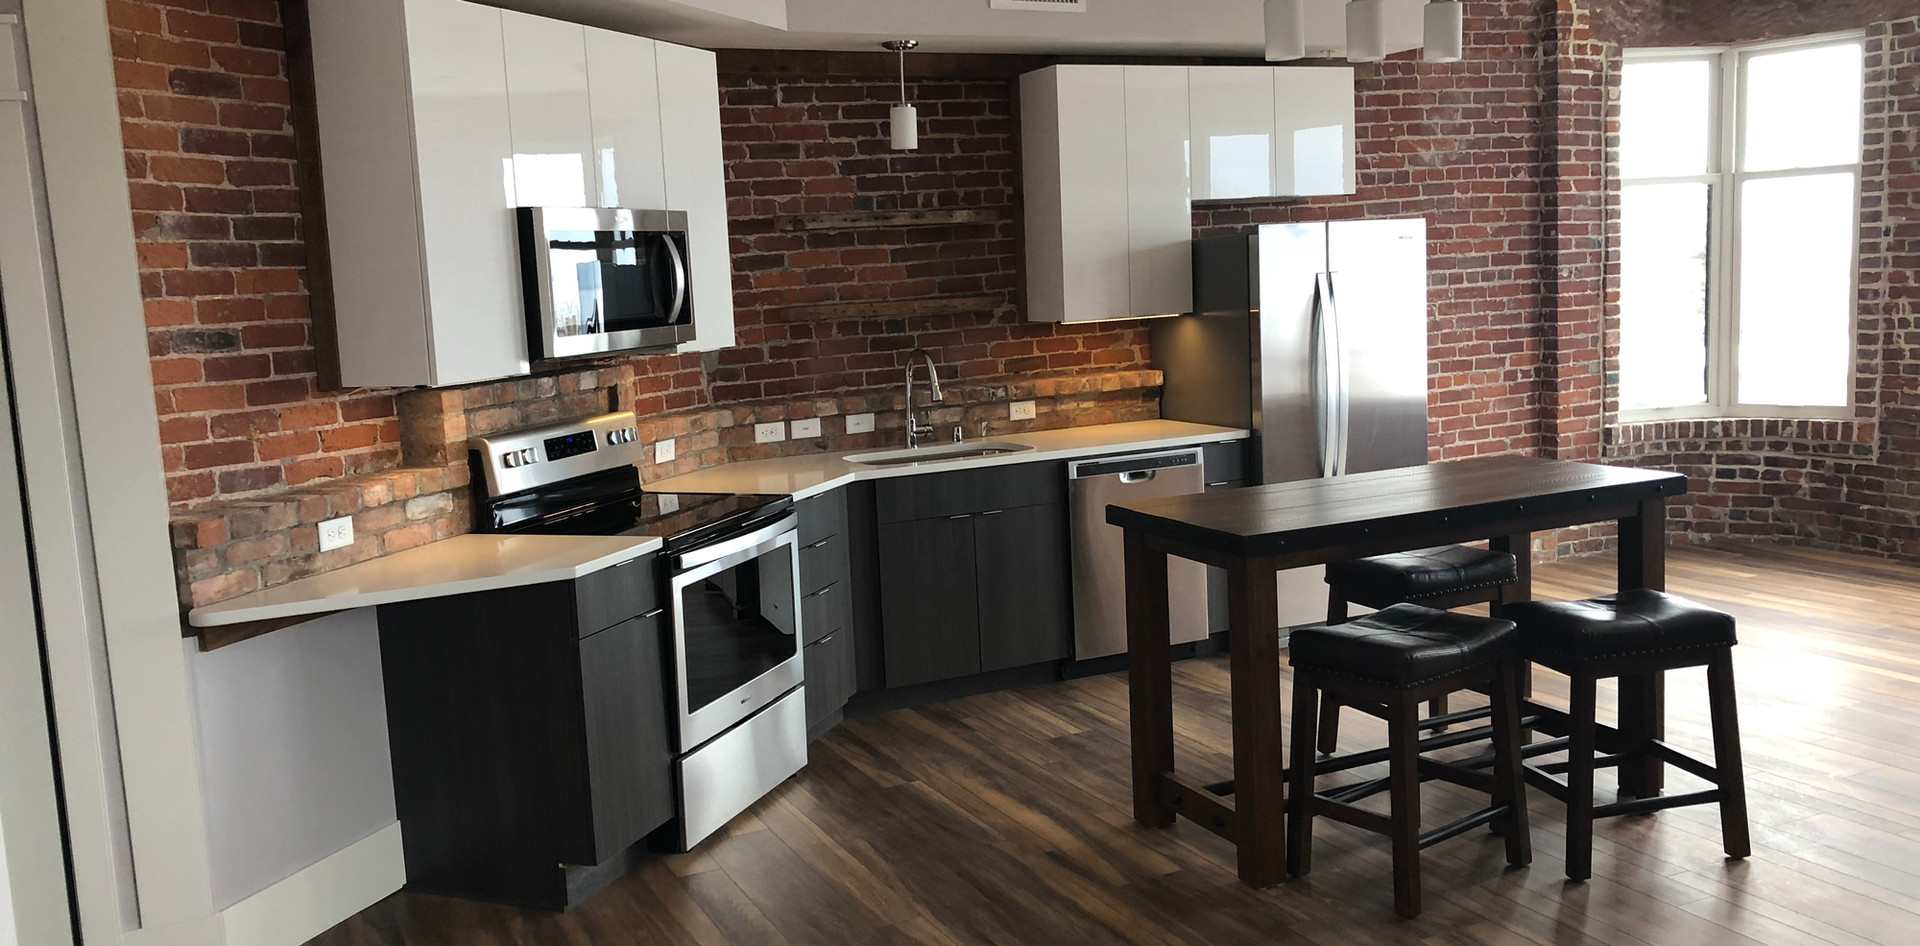 Redstone Lofts 400 Kitchen.JPG